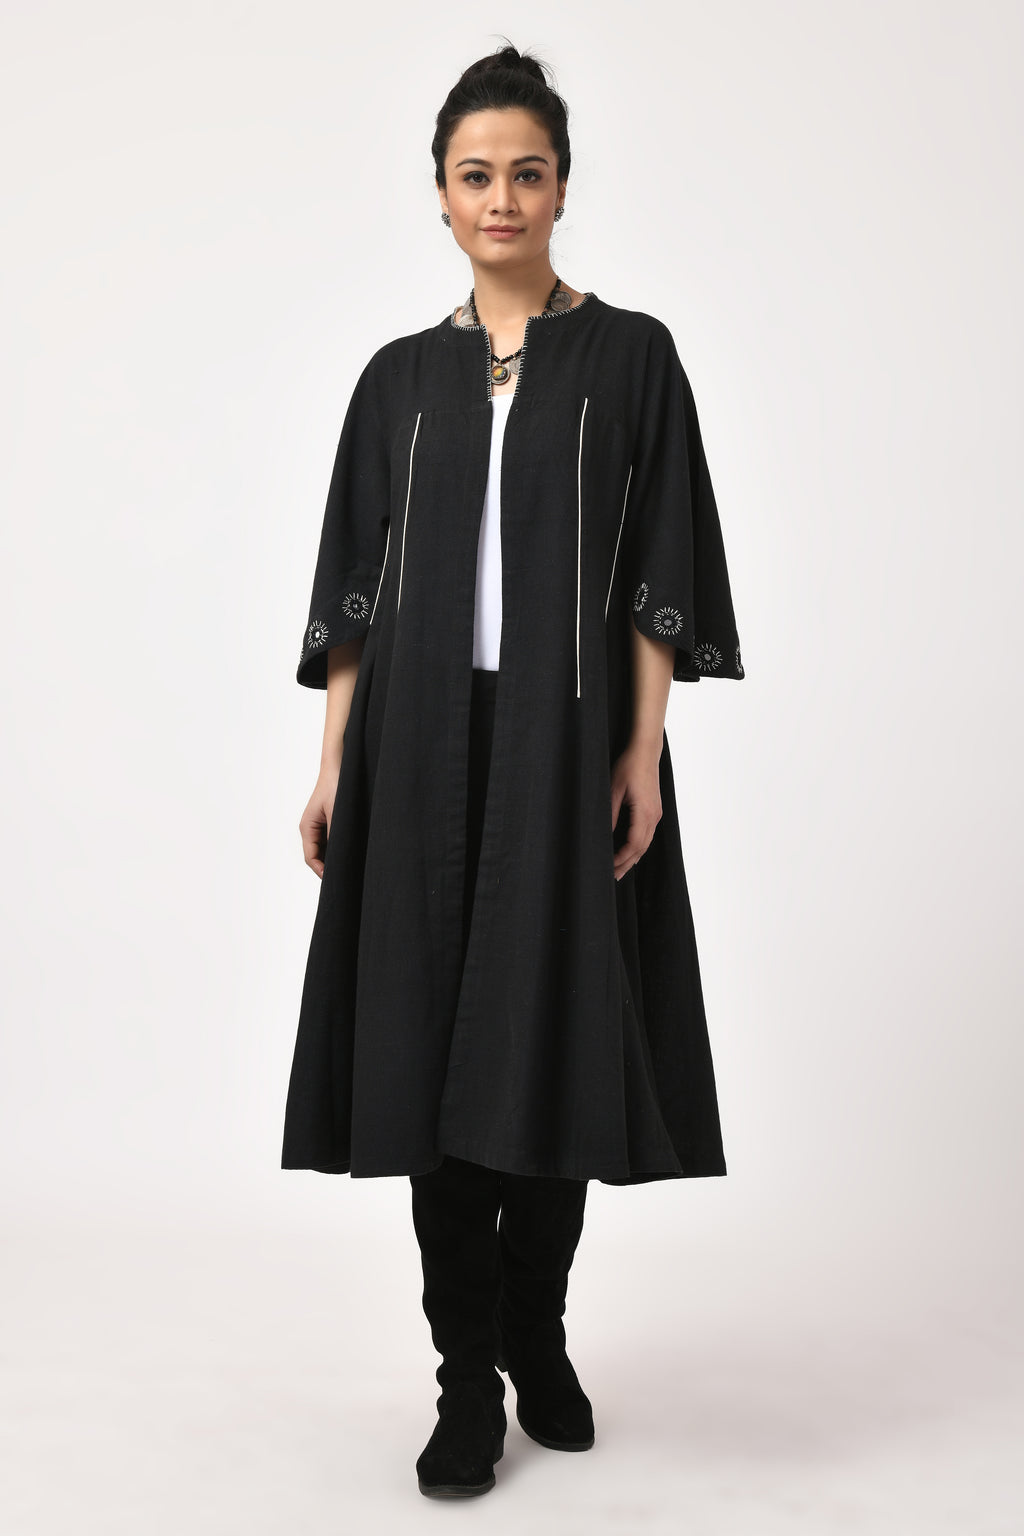 Mirror Work Black & White Long Jacket